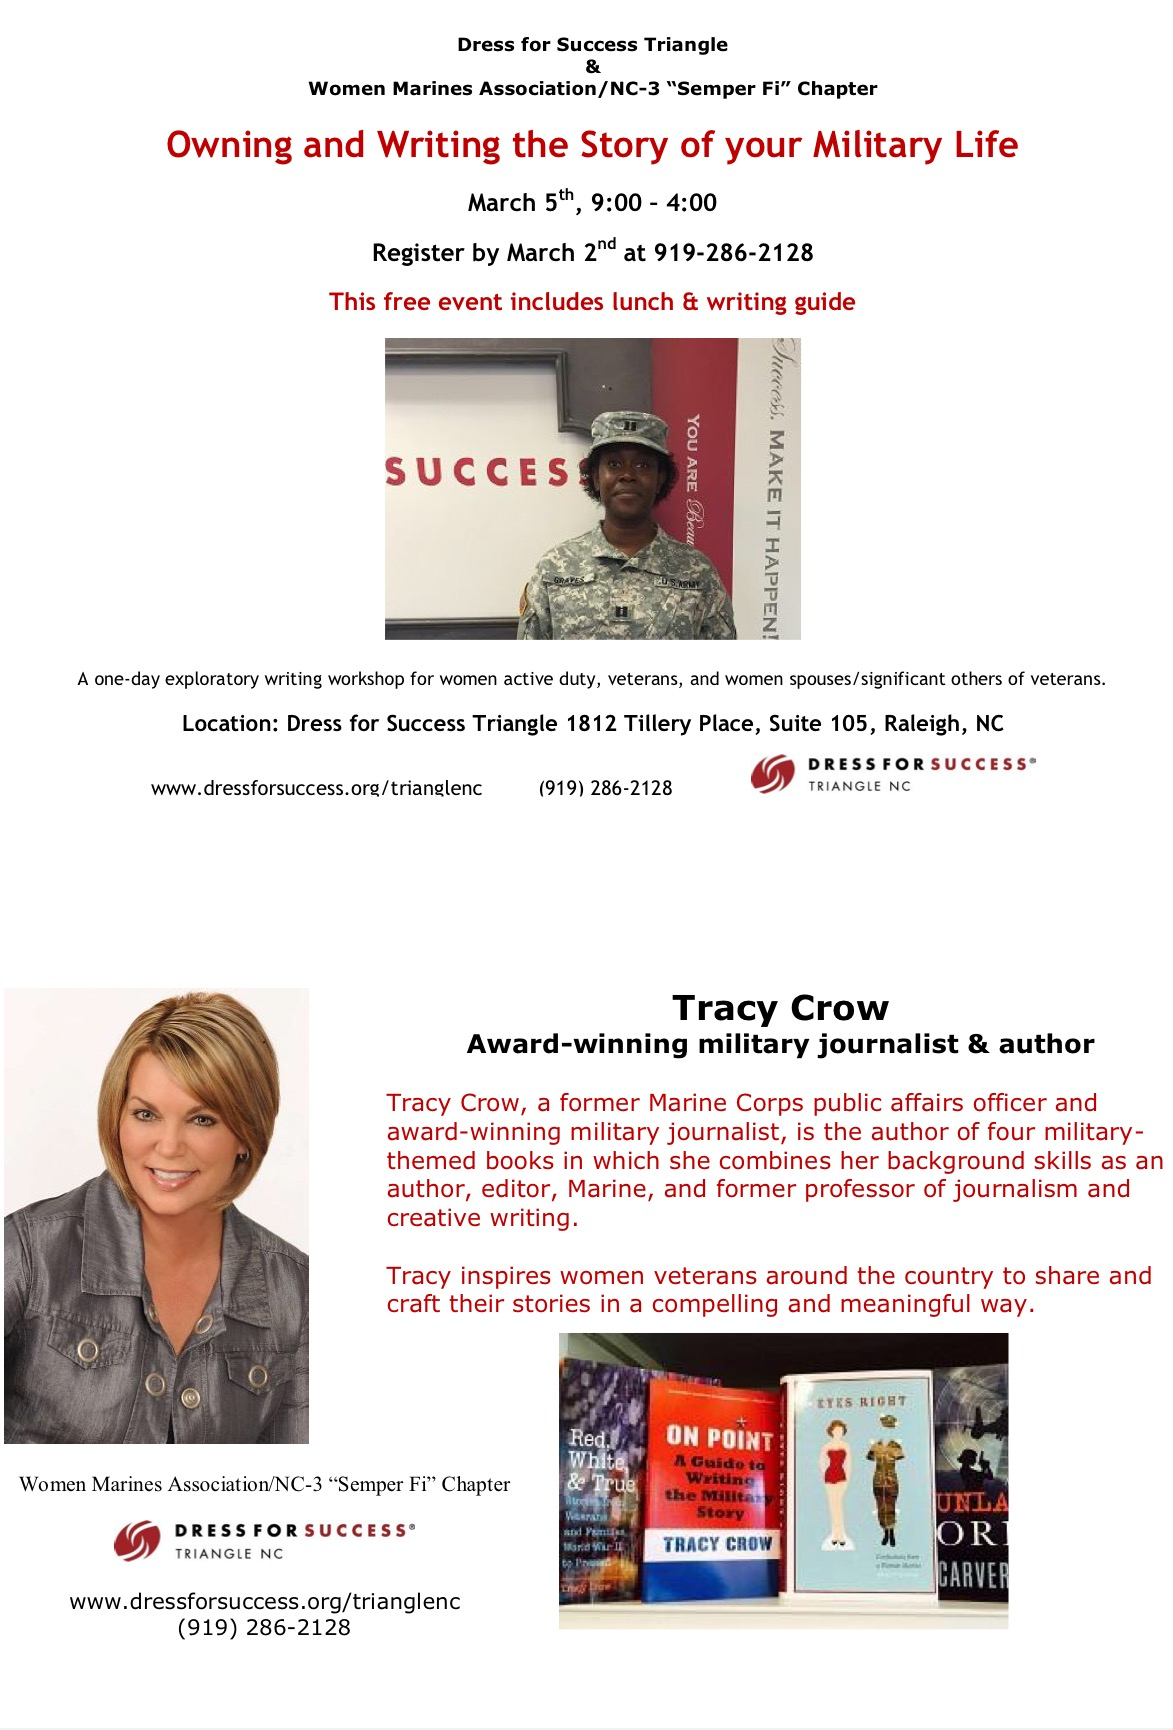 tracy crow page author speaker writing instructor editor fullsizerender 1 dress for success triangle